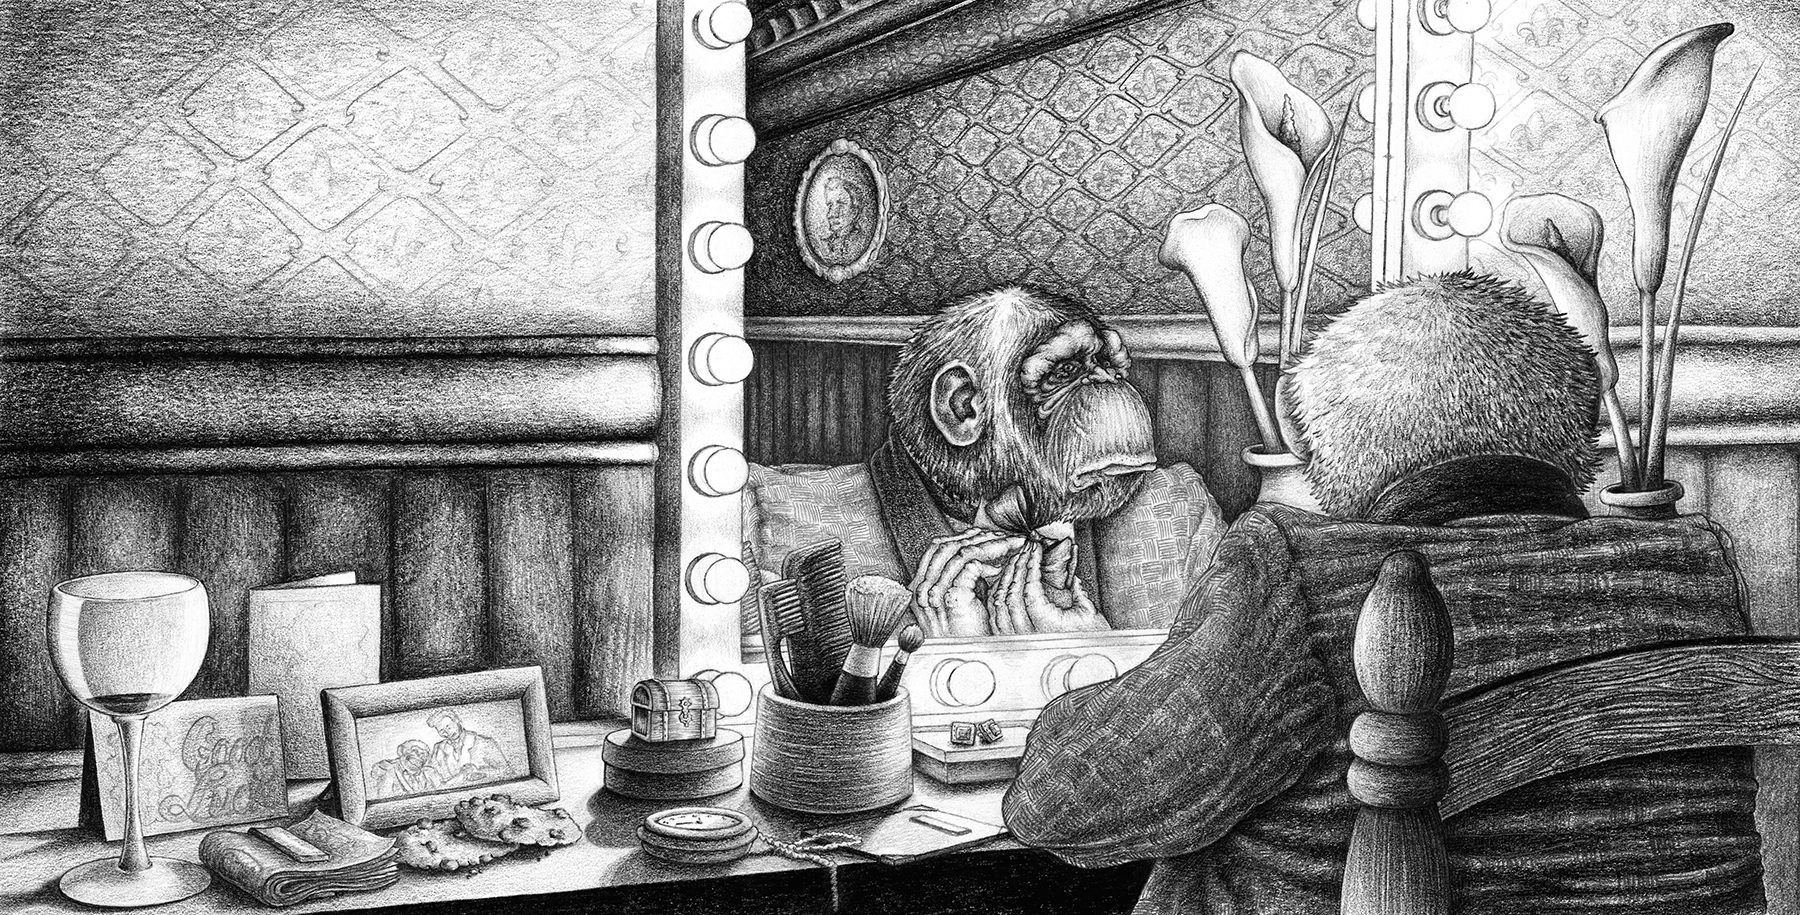 """Illustrating Kafka's """"A Report to an Academy"""", Graphite [ See the making of process here ] Original Drawings Available"""